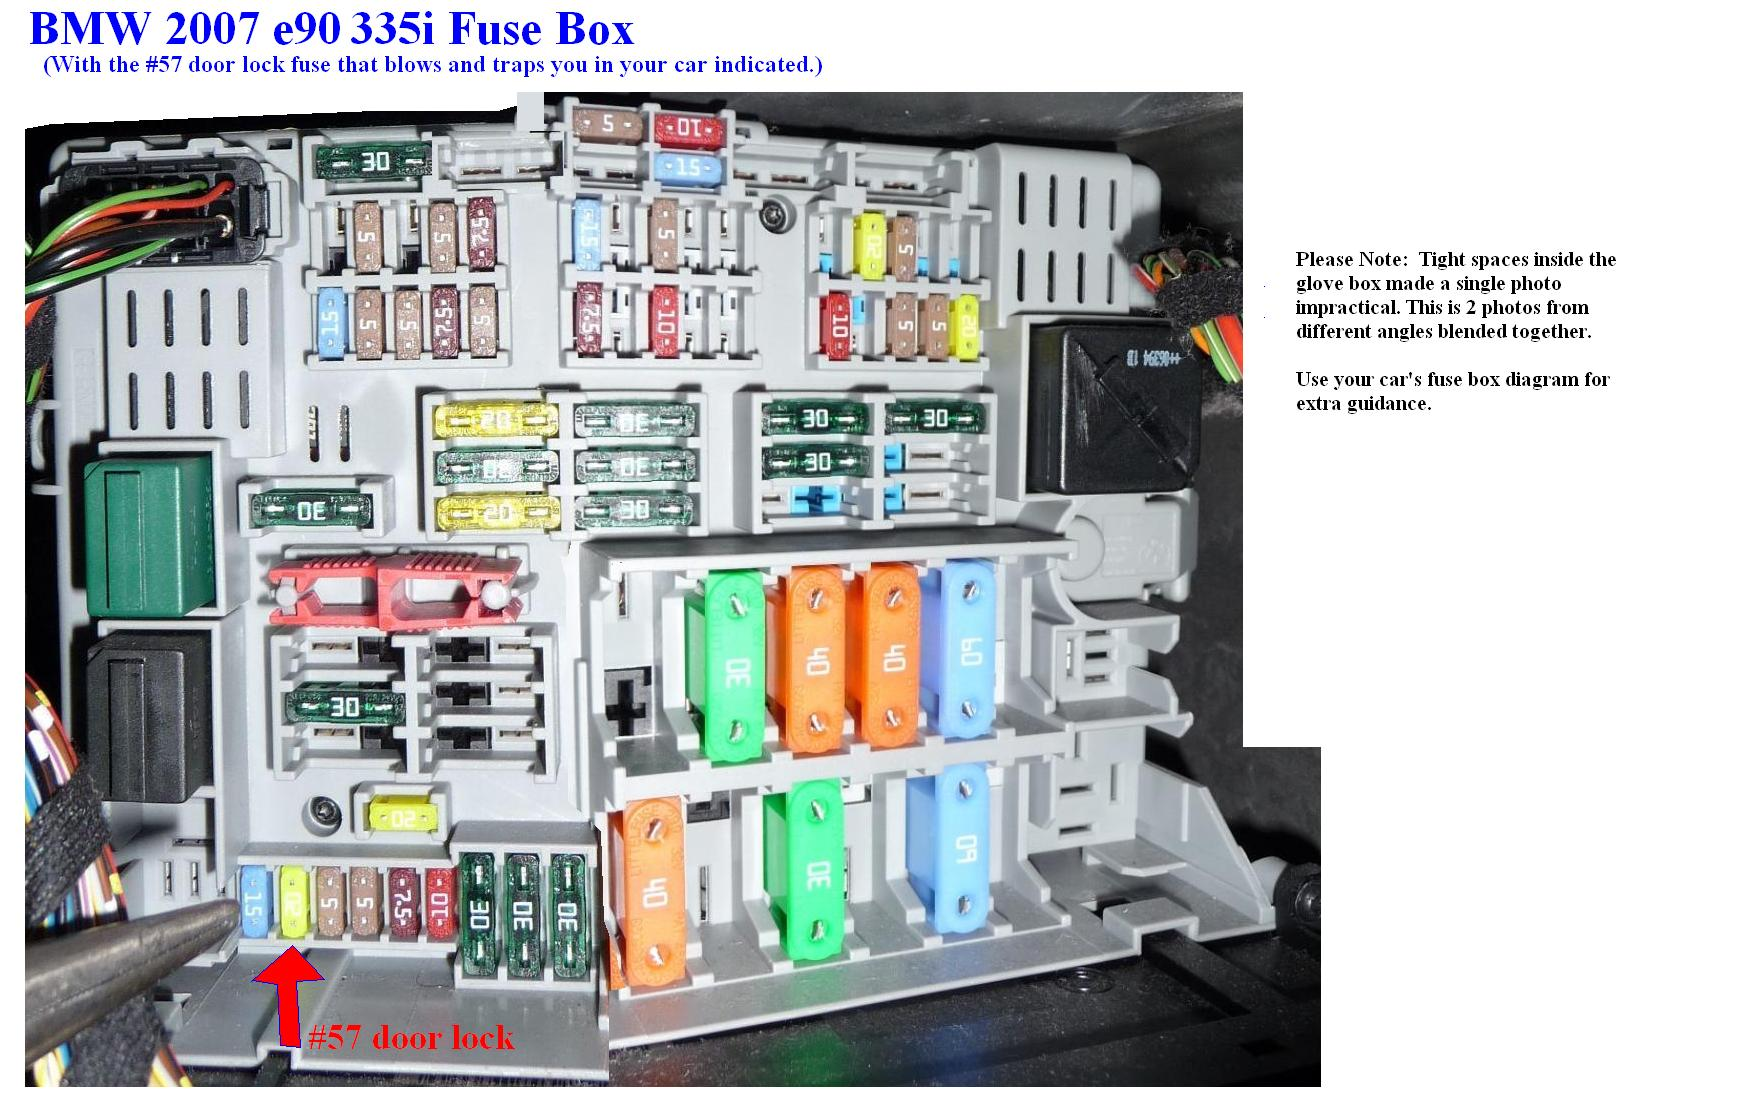 e90 fuse box old style bmw 320d e90 fuse box diagram